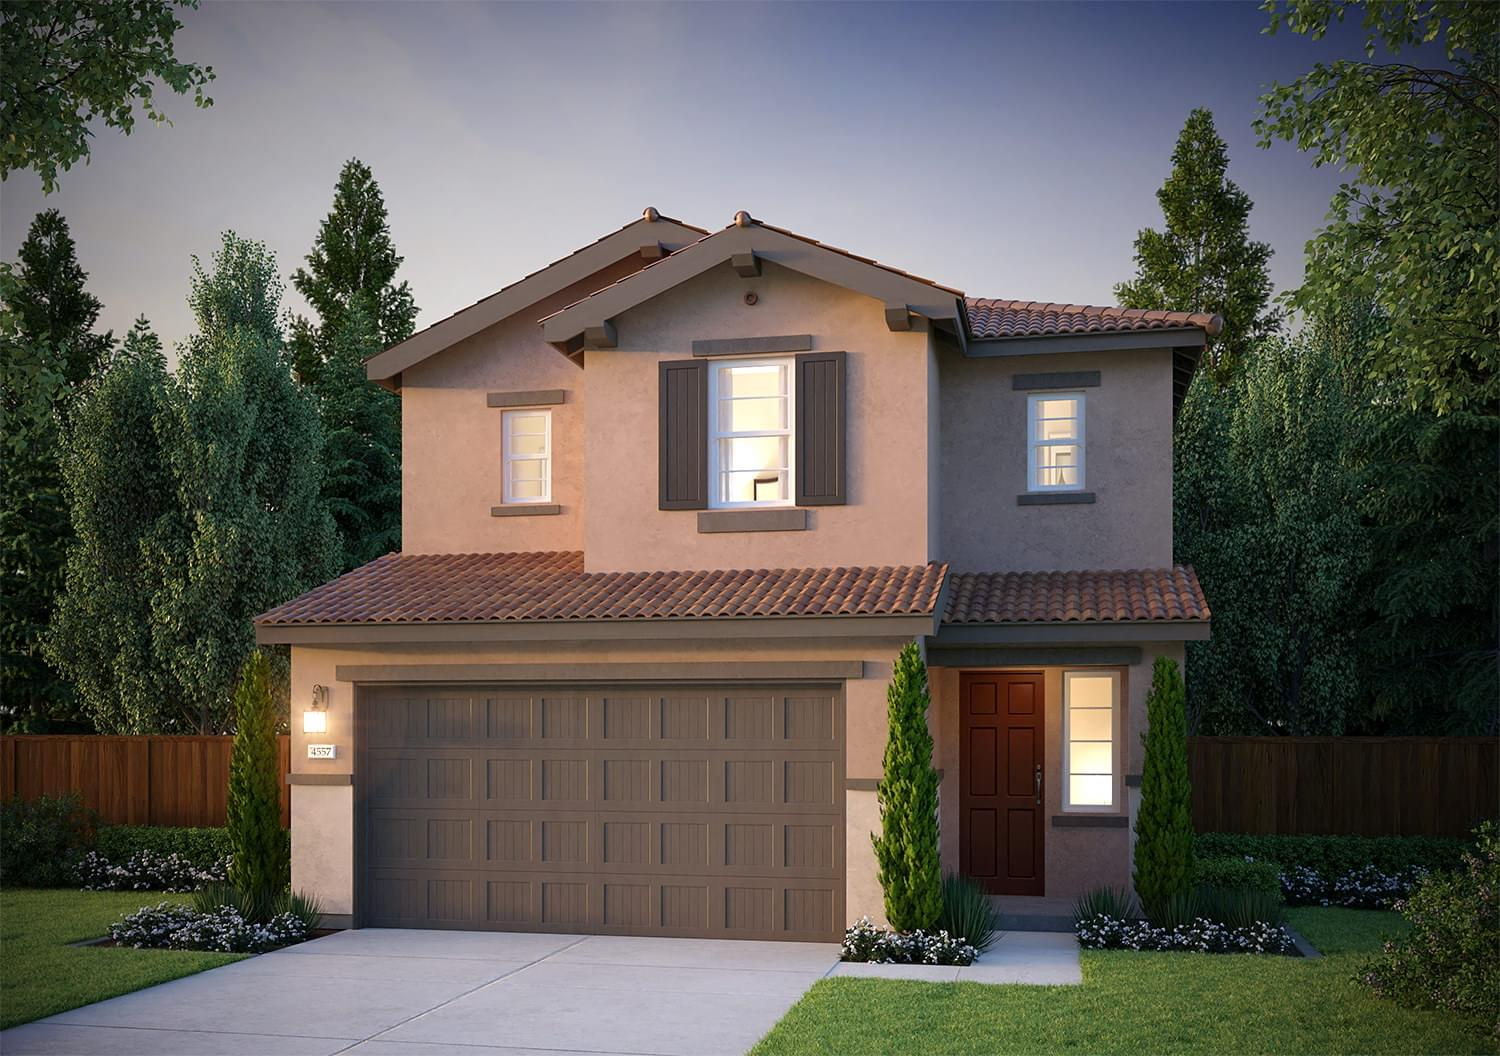 403 Starling Lane in , CA by DeNova Homes